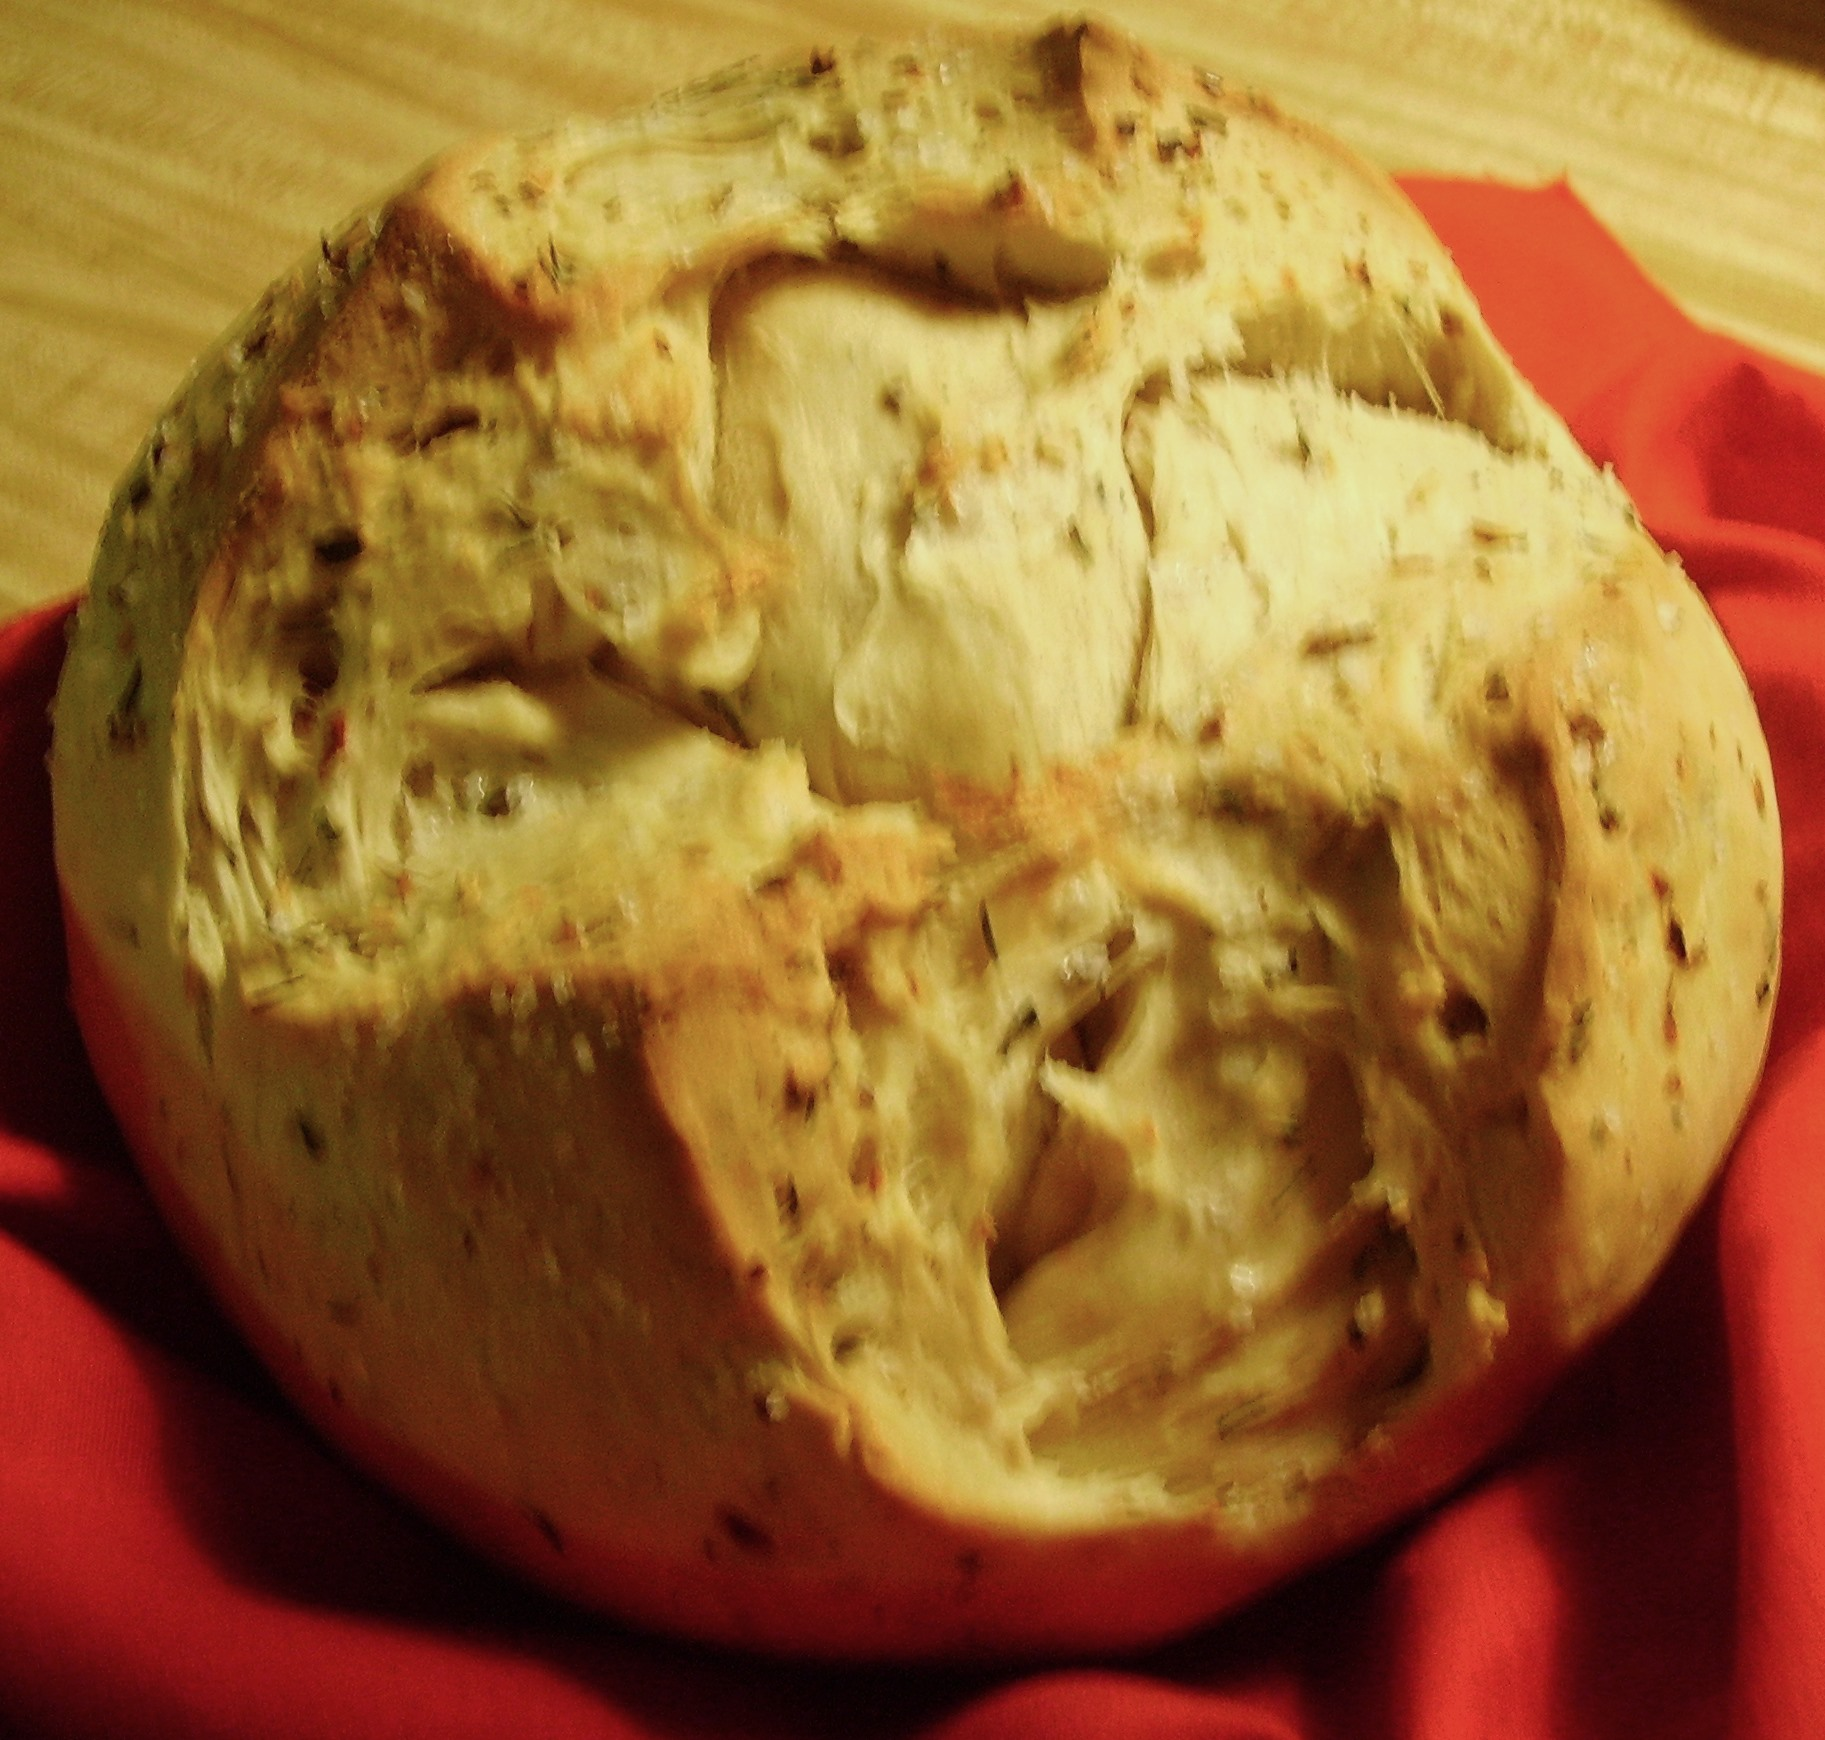 Spicy Garlic & Herb Bread Baked in a Pot | Mama D's Kitchen of Love